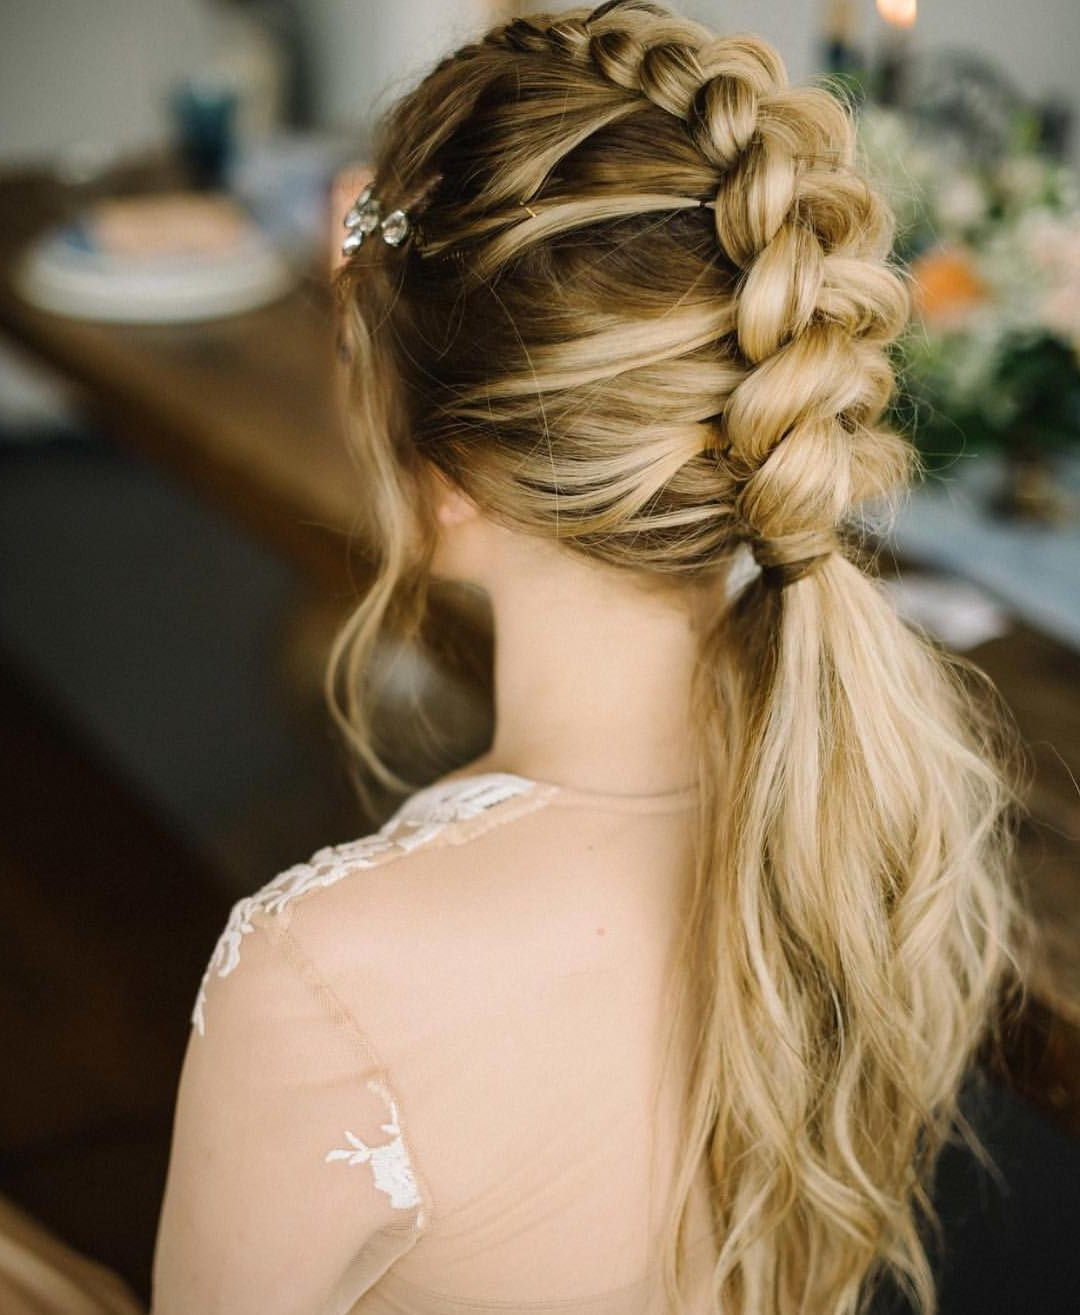 10 Braided Hairstyles For Long Hair – Weddings, Festivals & Holiday With Popular Beautifully Braided Ponytail Hairstyles (View 1 of 20)